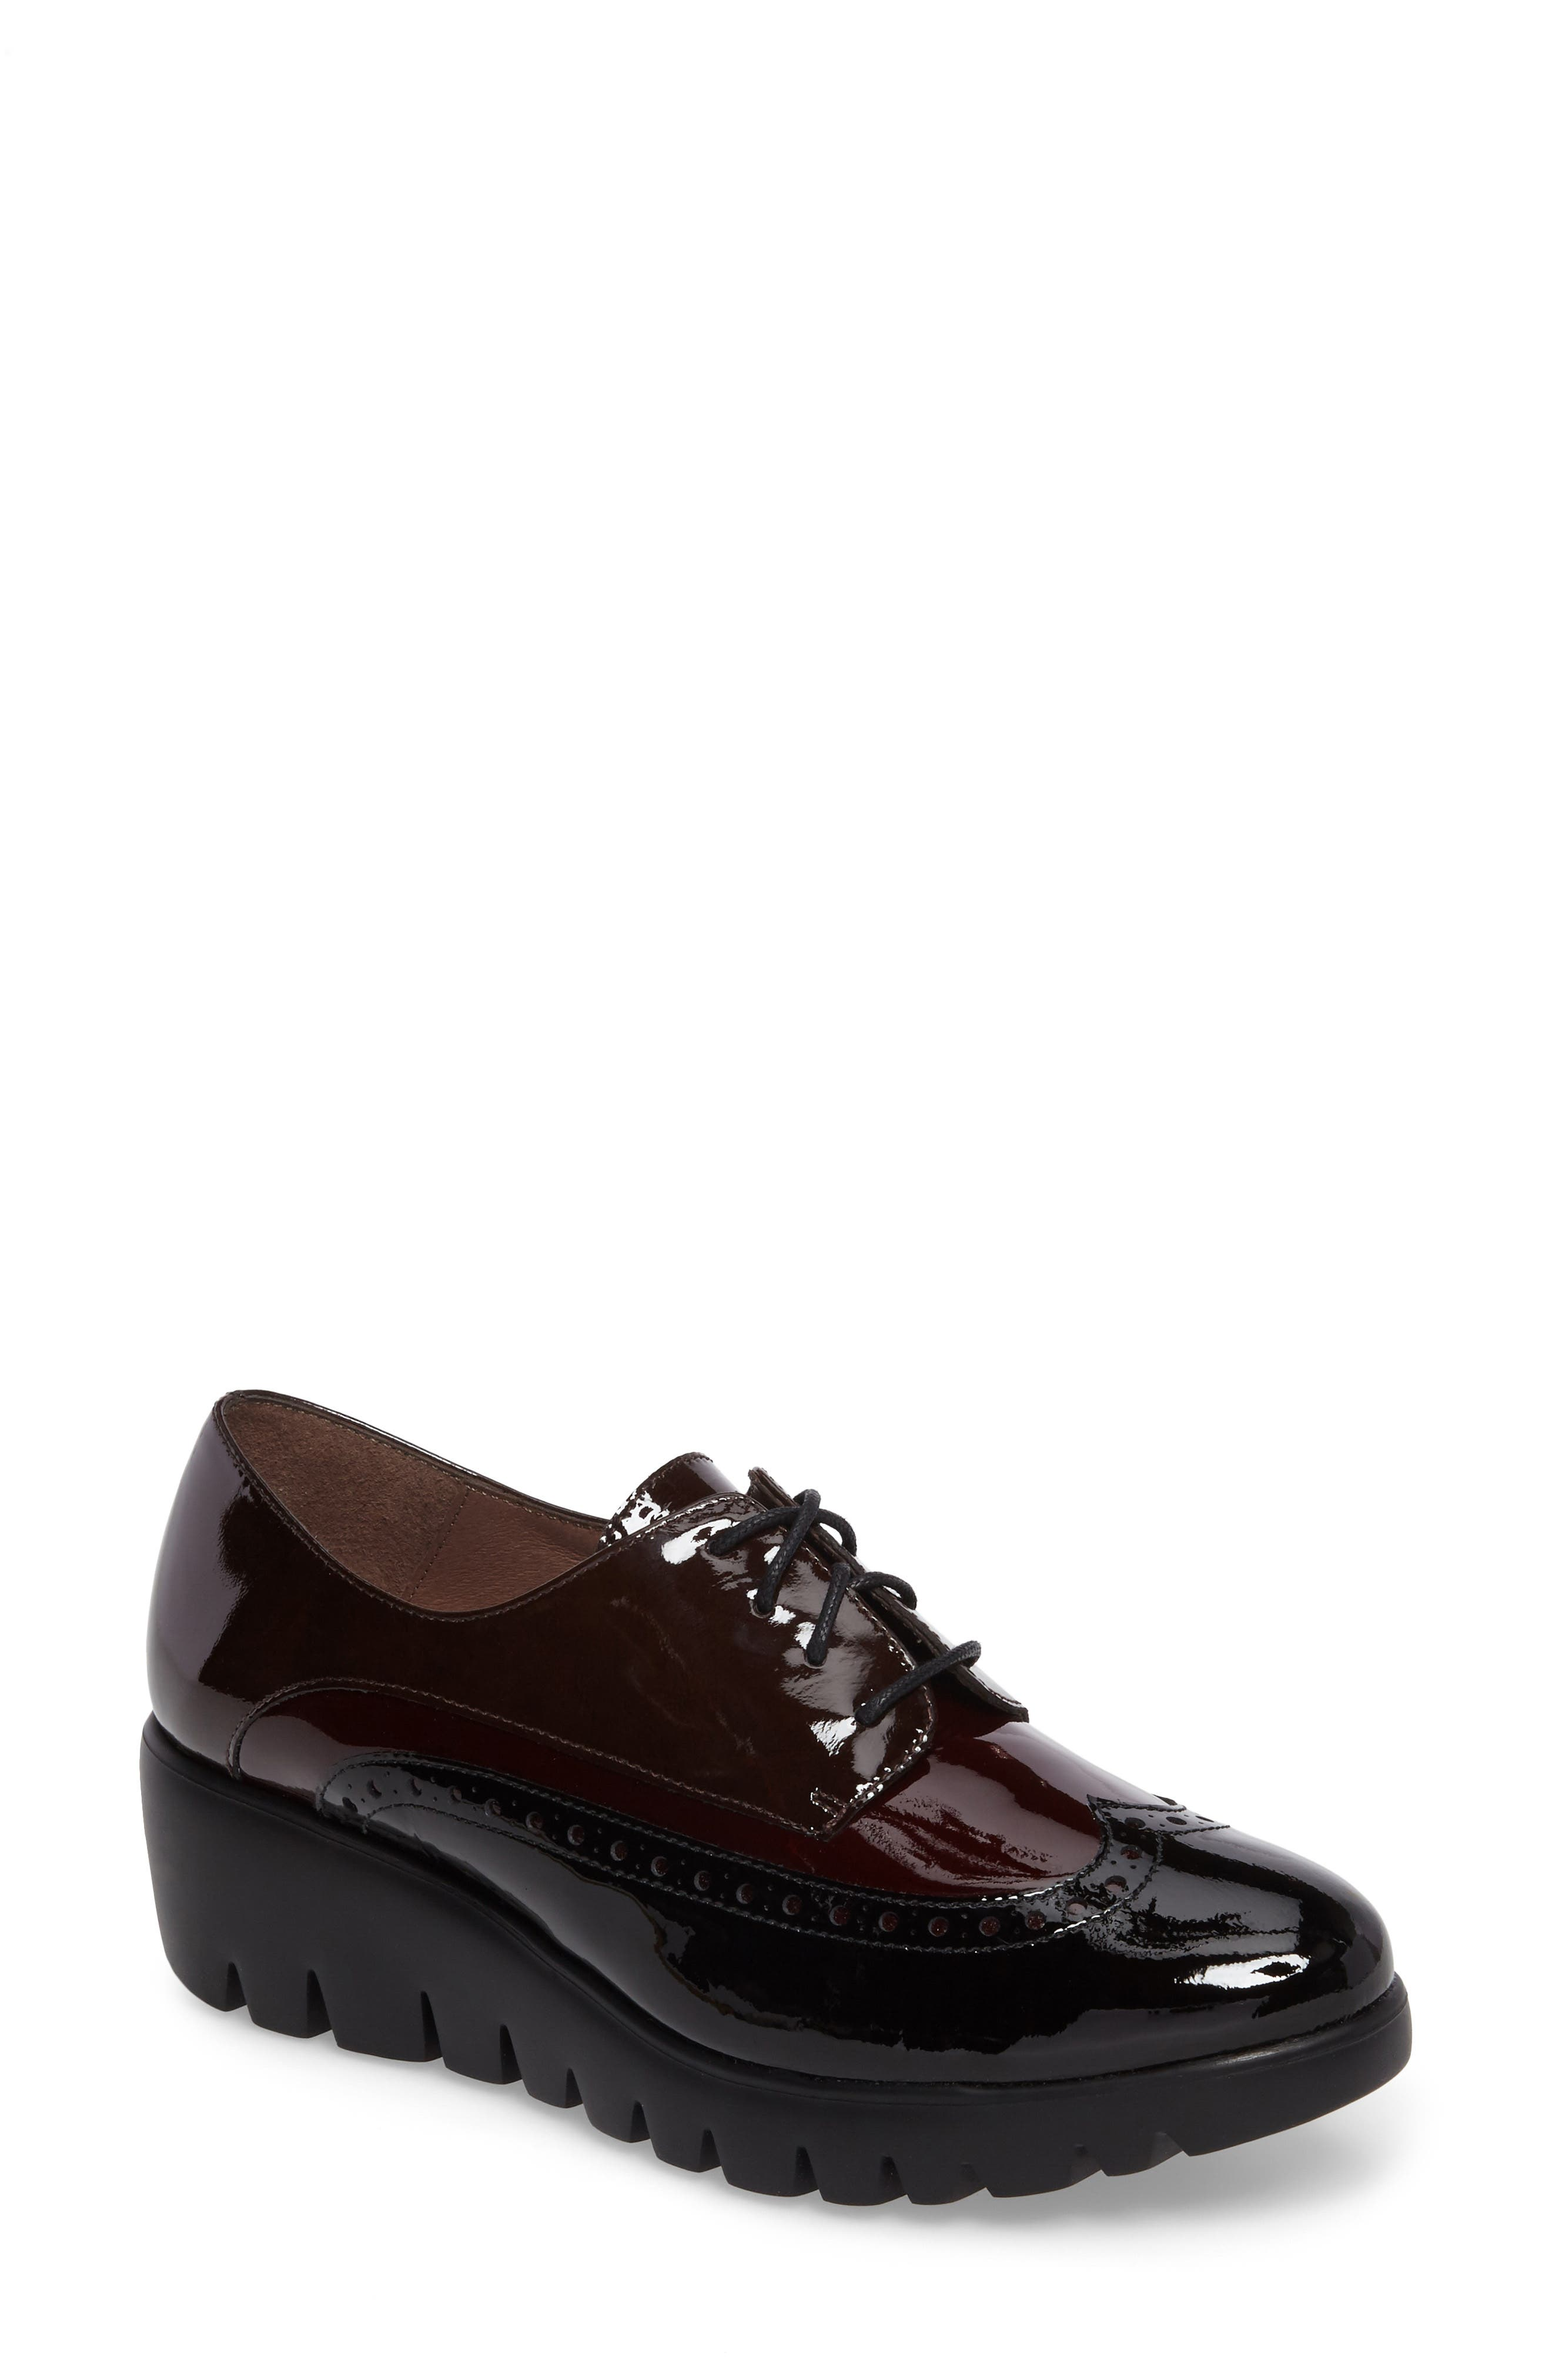 Wedge Wingtip Derby,                         Main,                         color, Black/ Bordo Patent Leather